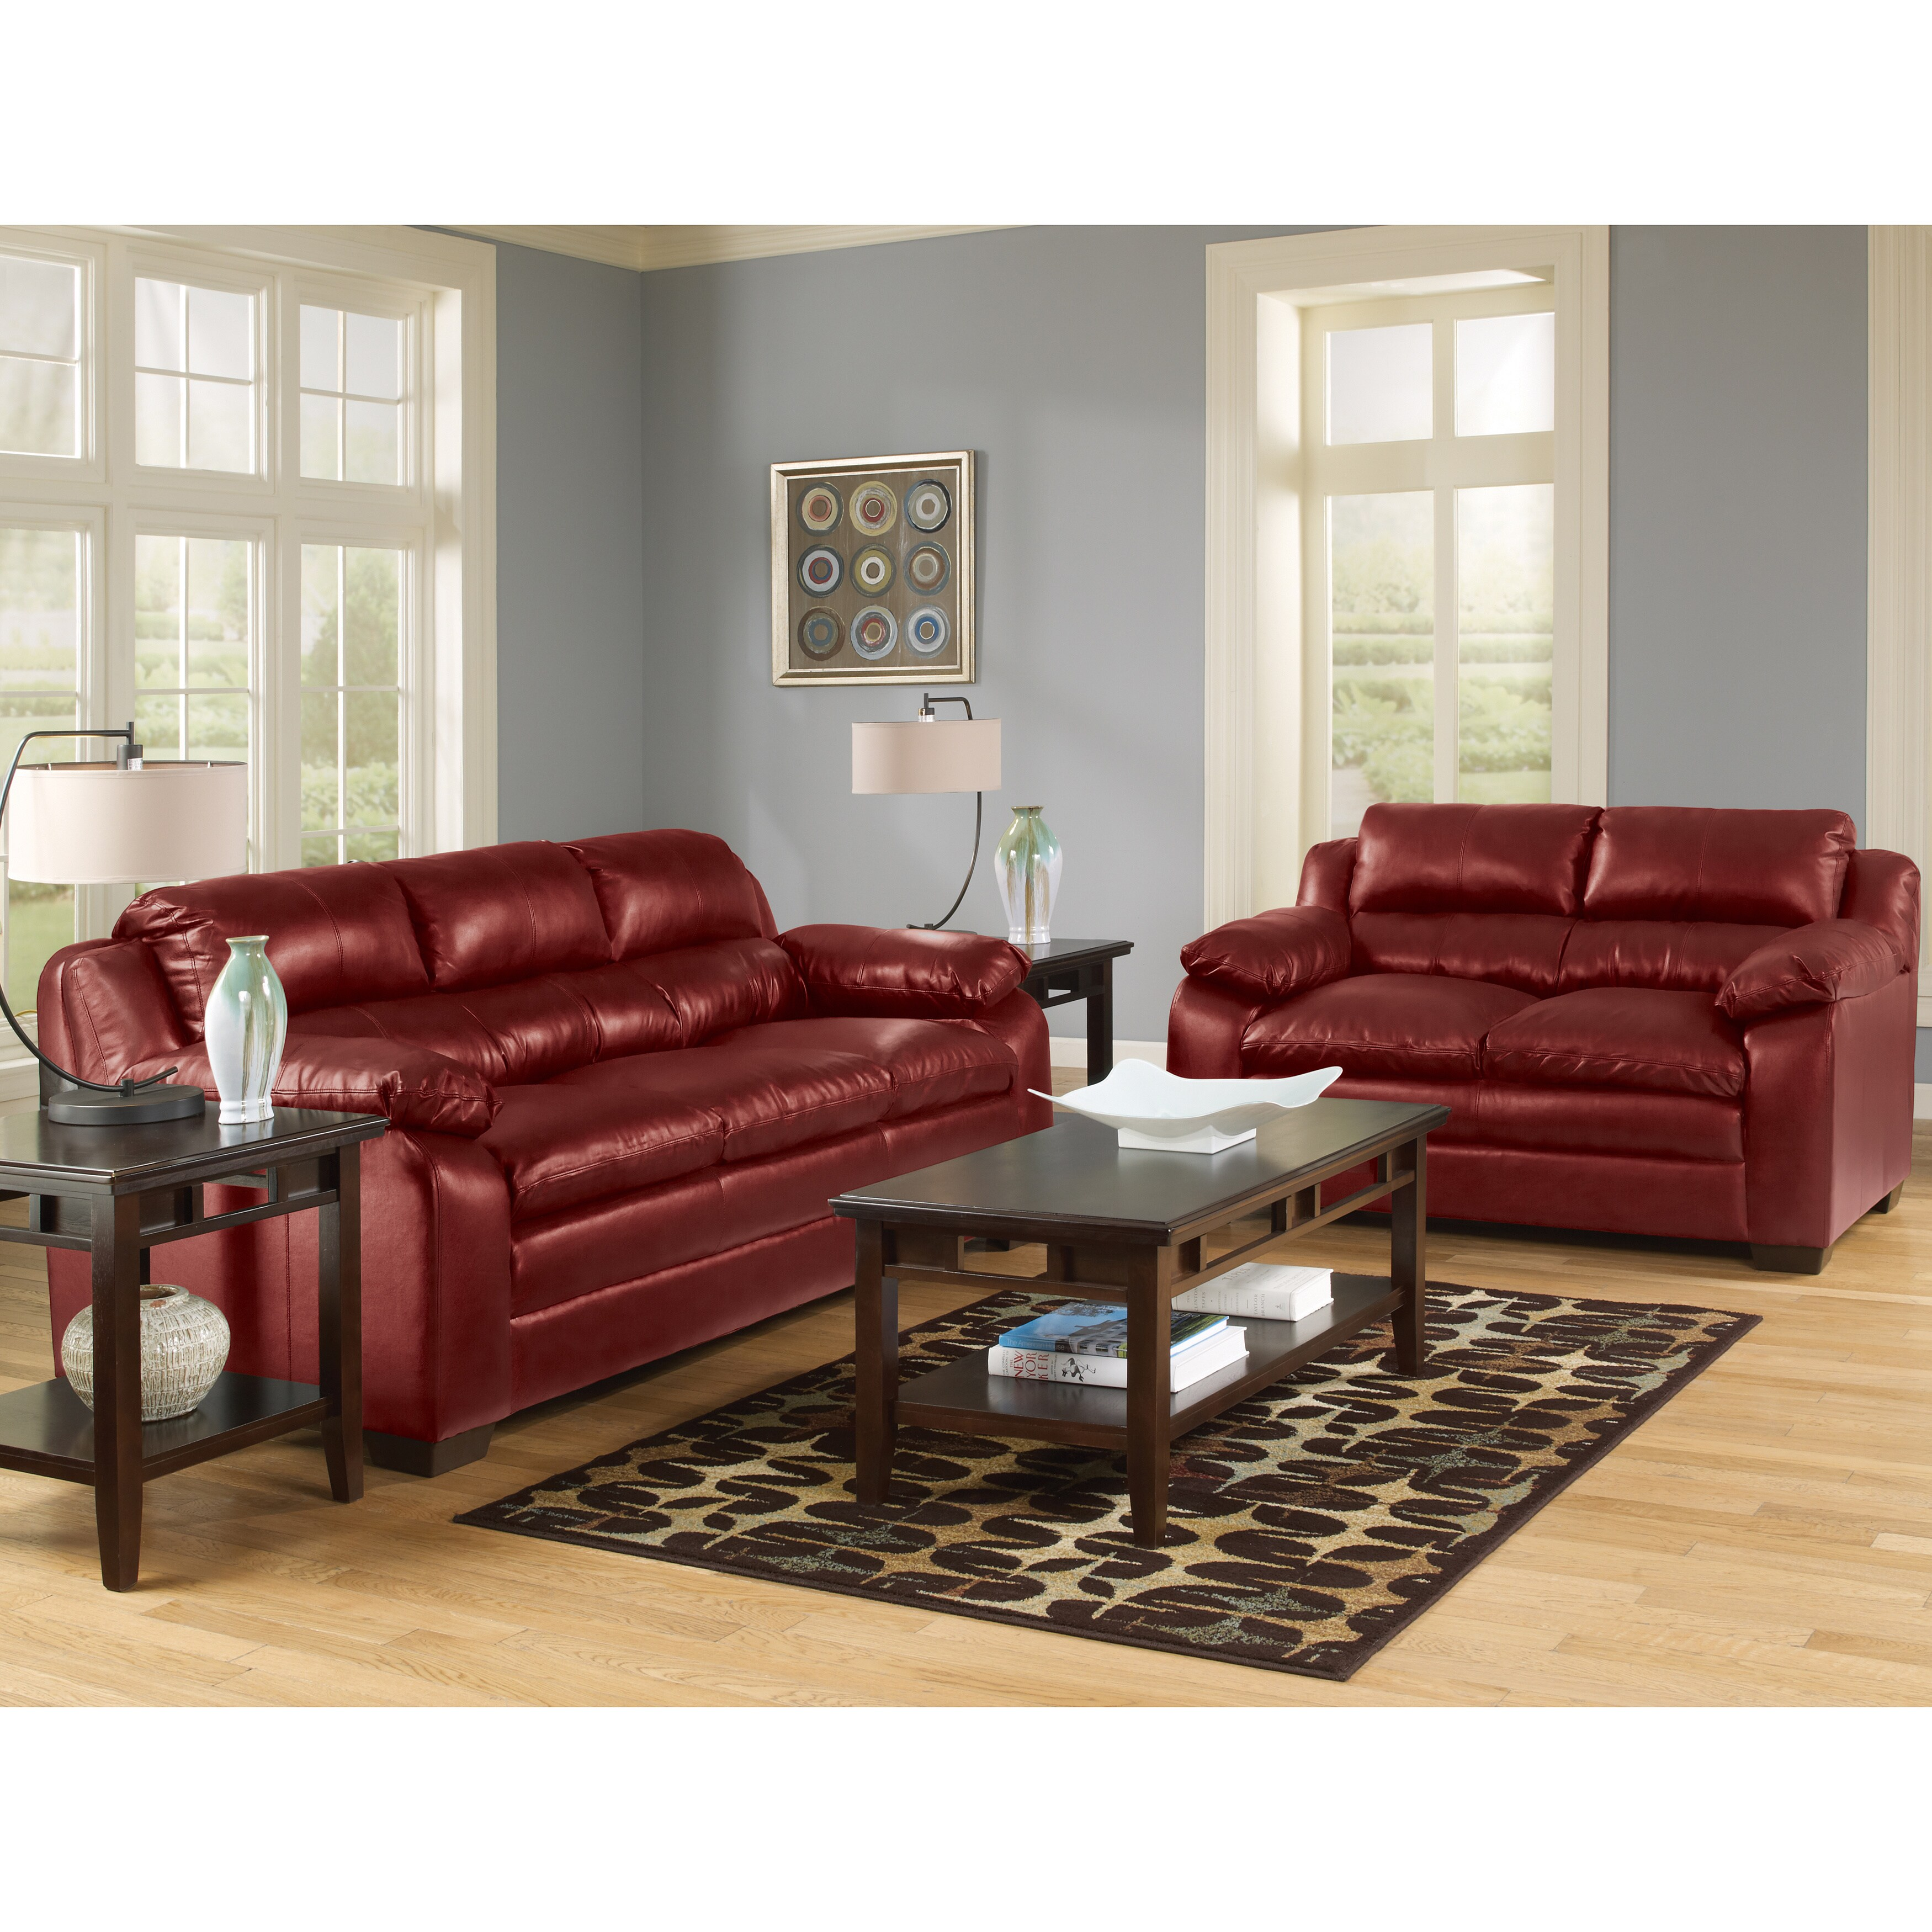 Art van maddox sofa and loveseat set red overstock for Red sectional sofa art van